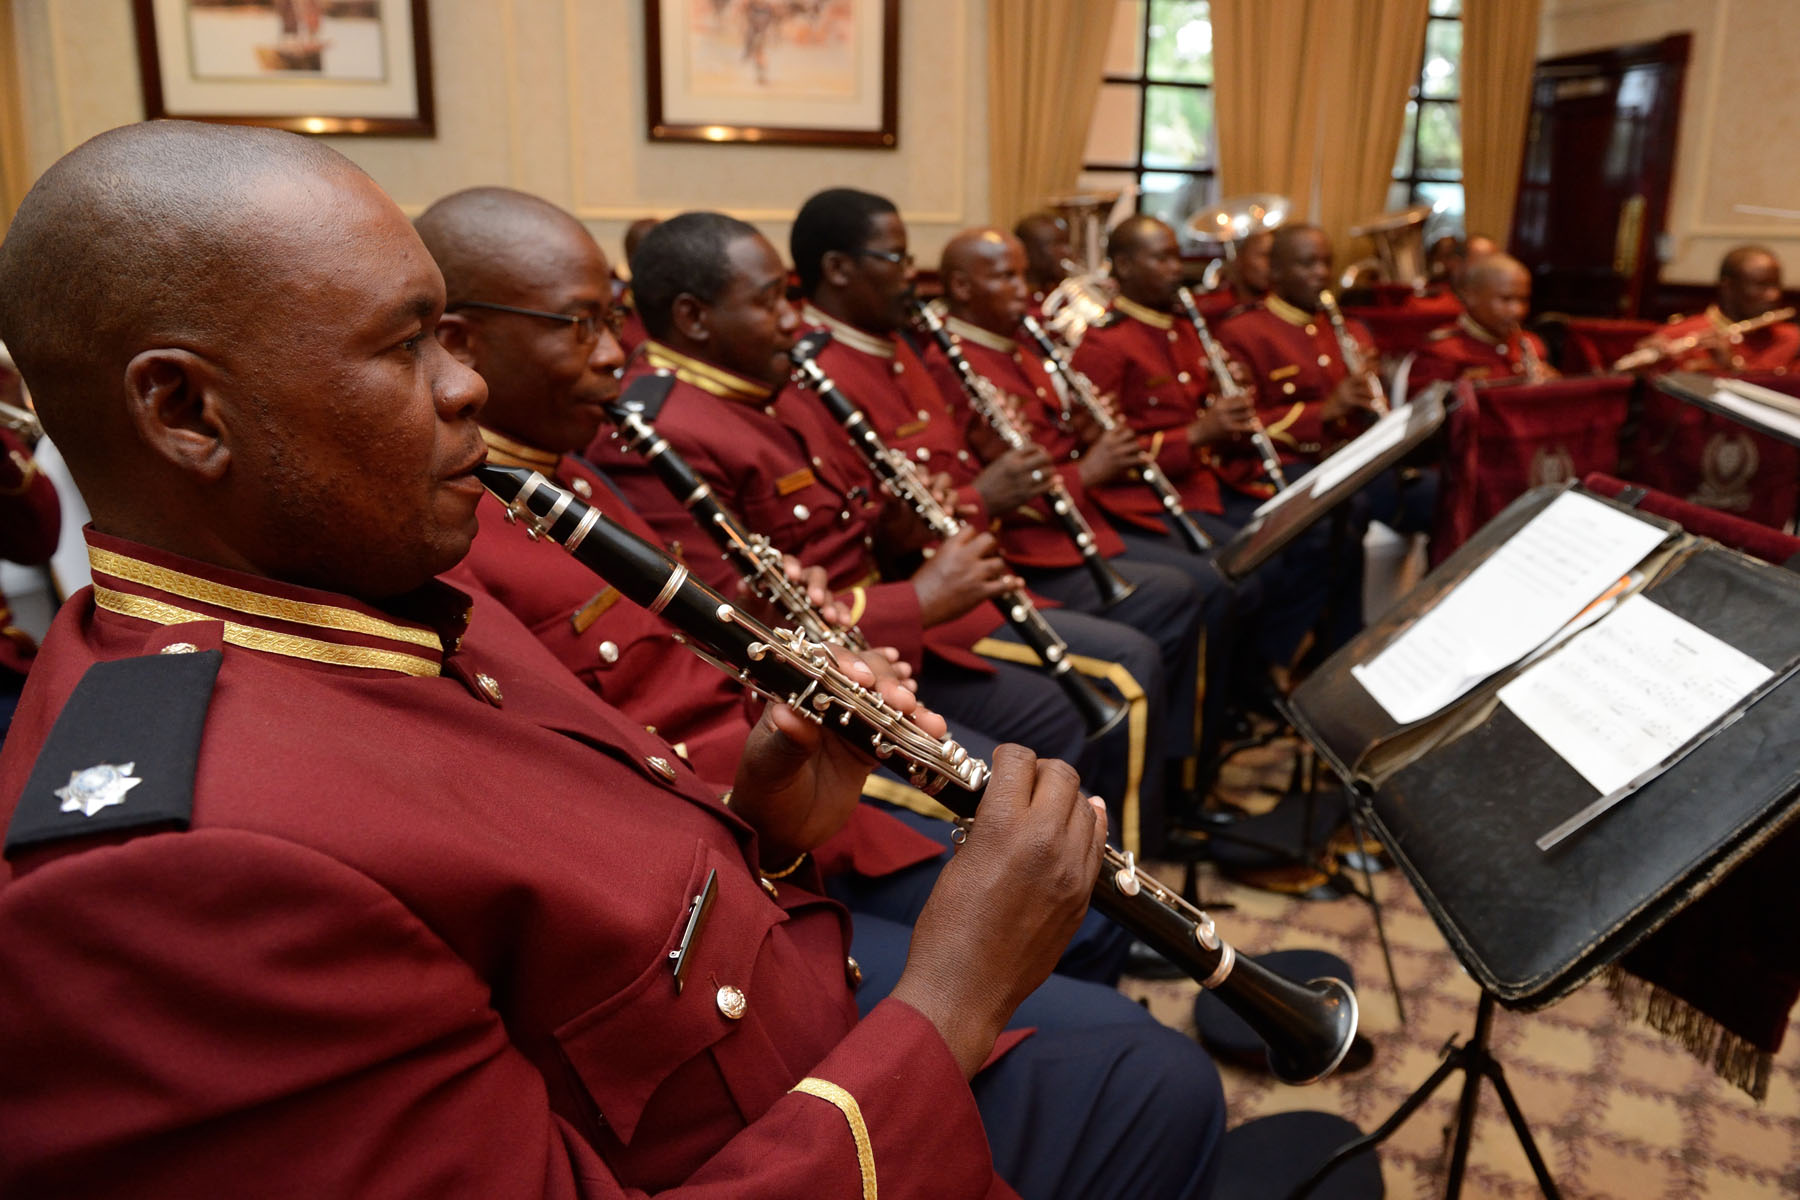 A military band provided entertainment to guests during the State luncheon.